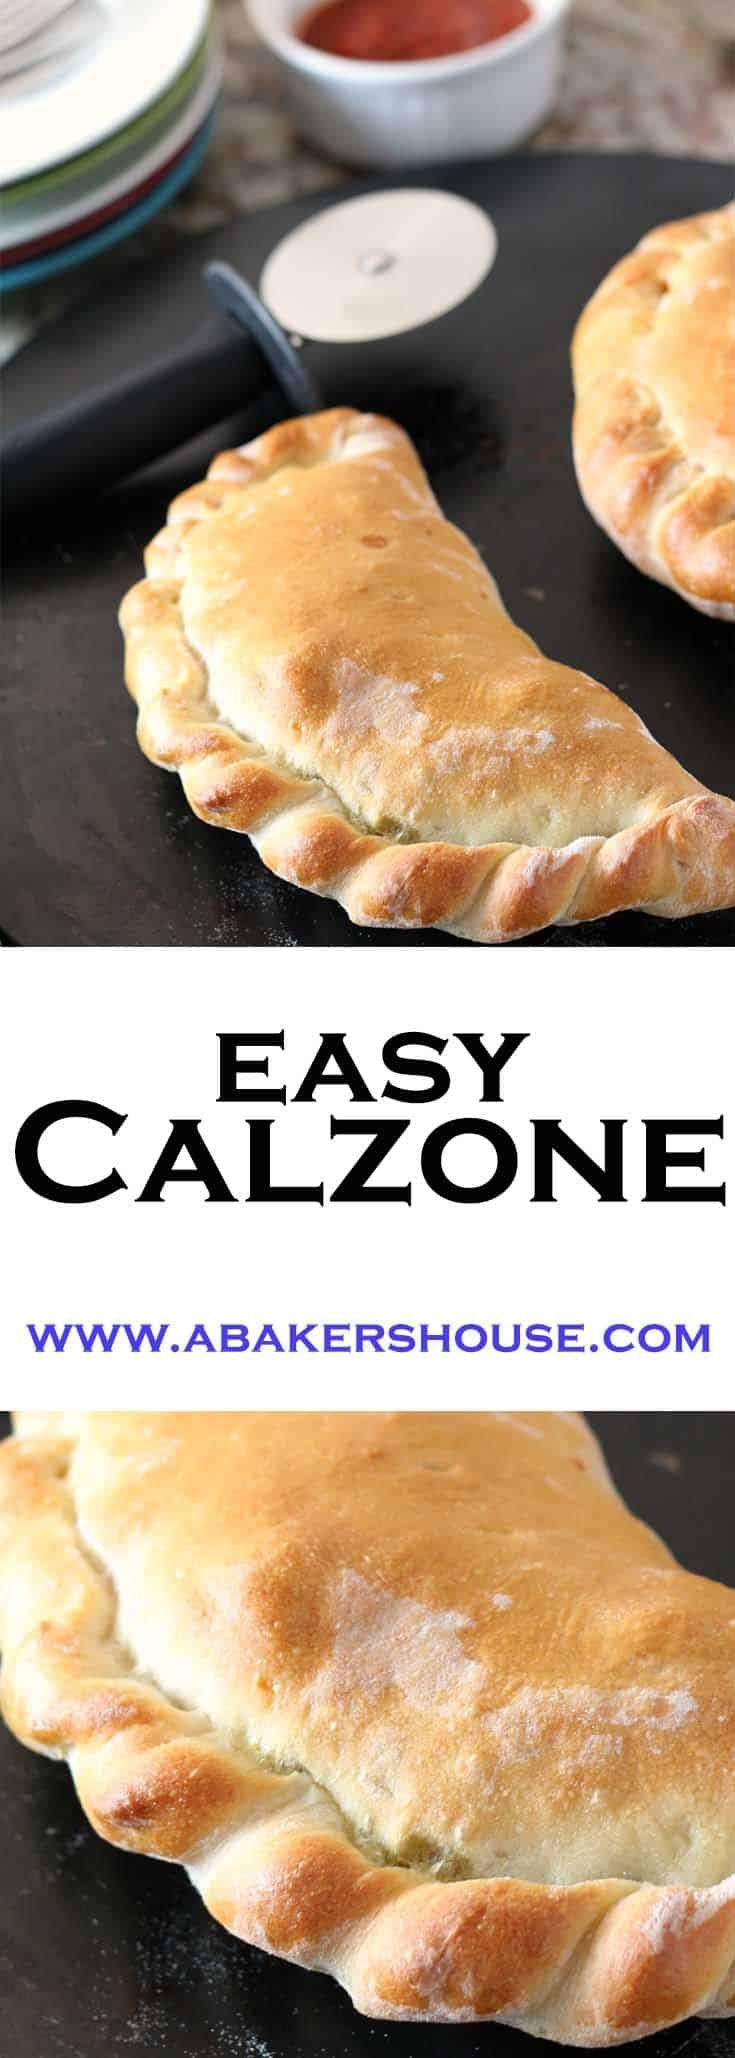 Easy to make homemade calzone. Dough folded around sauce and fillings makes a wonderful baked calzone. King Arthur Flour recipe #kingarthur #calzone #breadrecipe #abakershouse